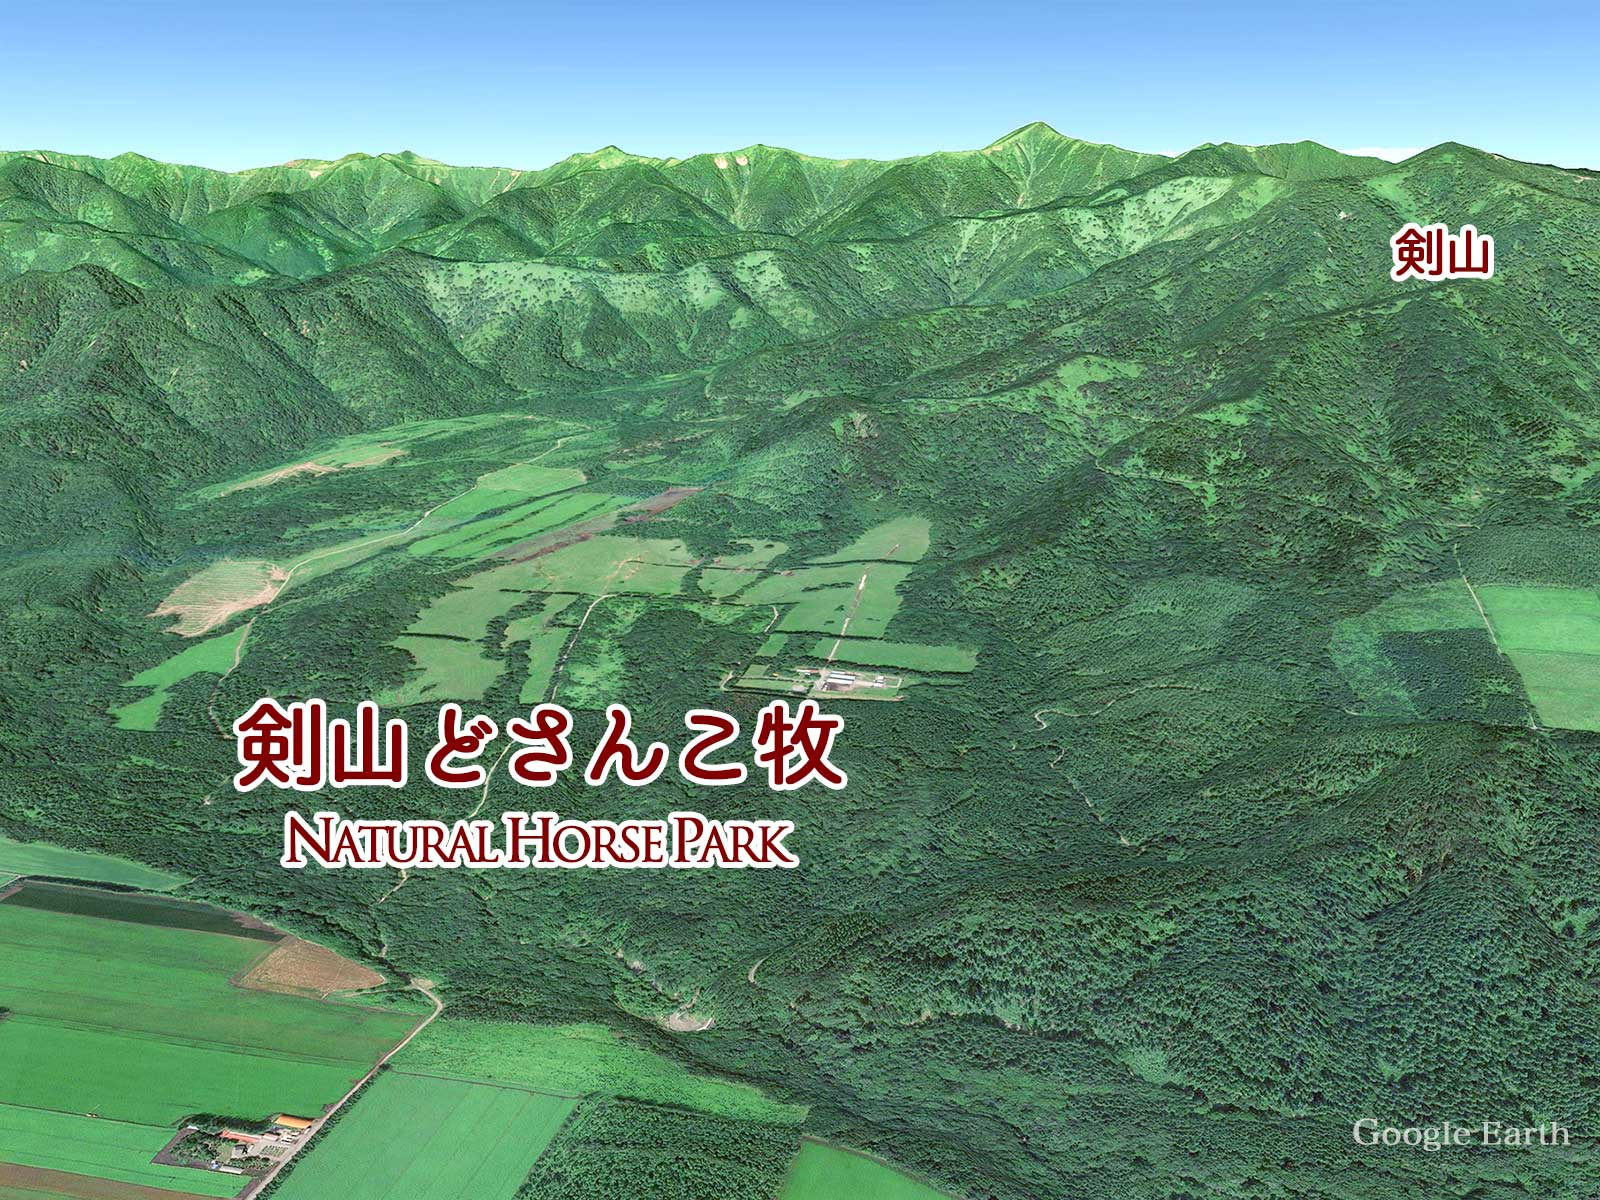 Google earthマップ